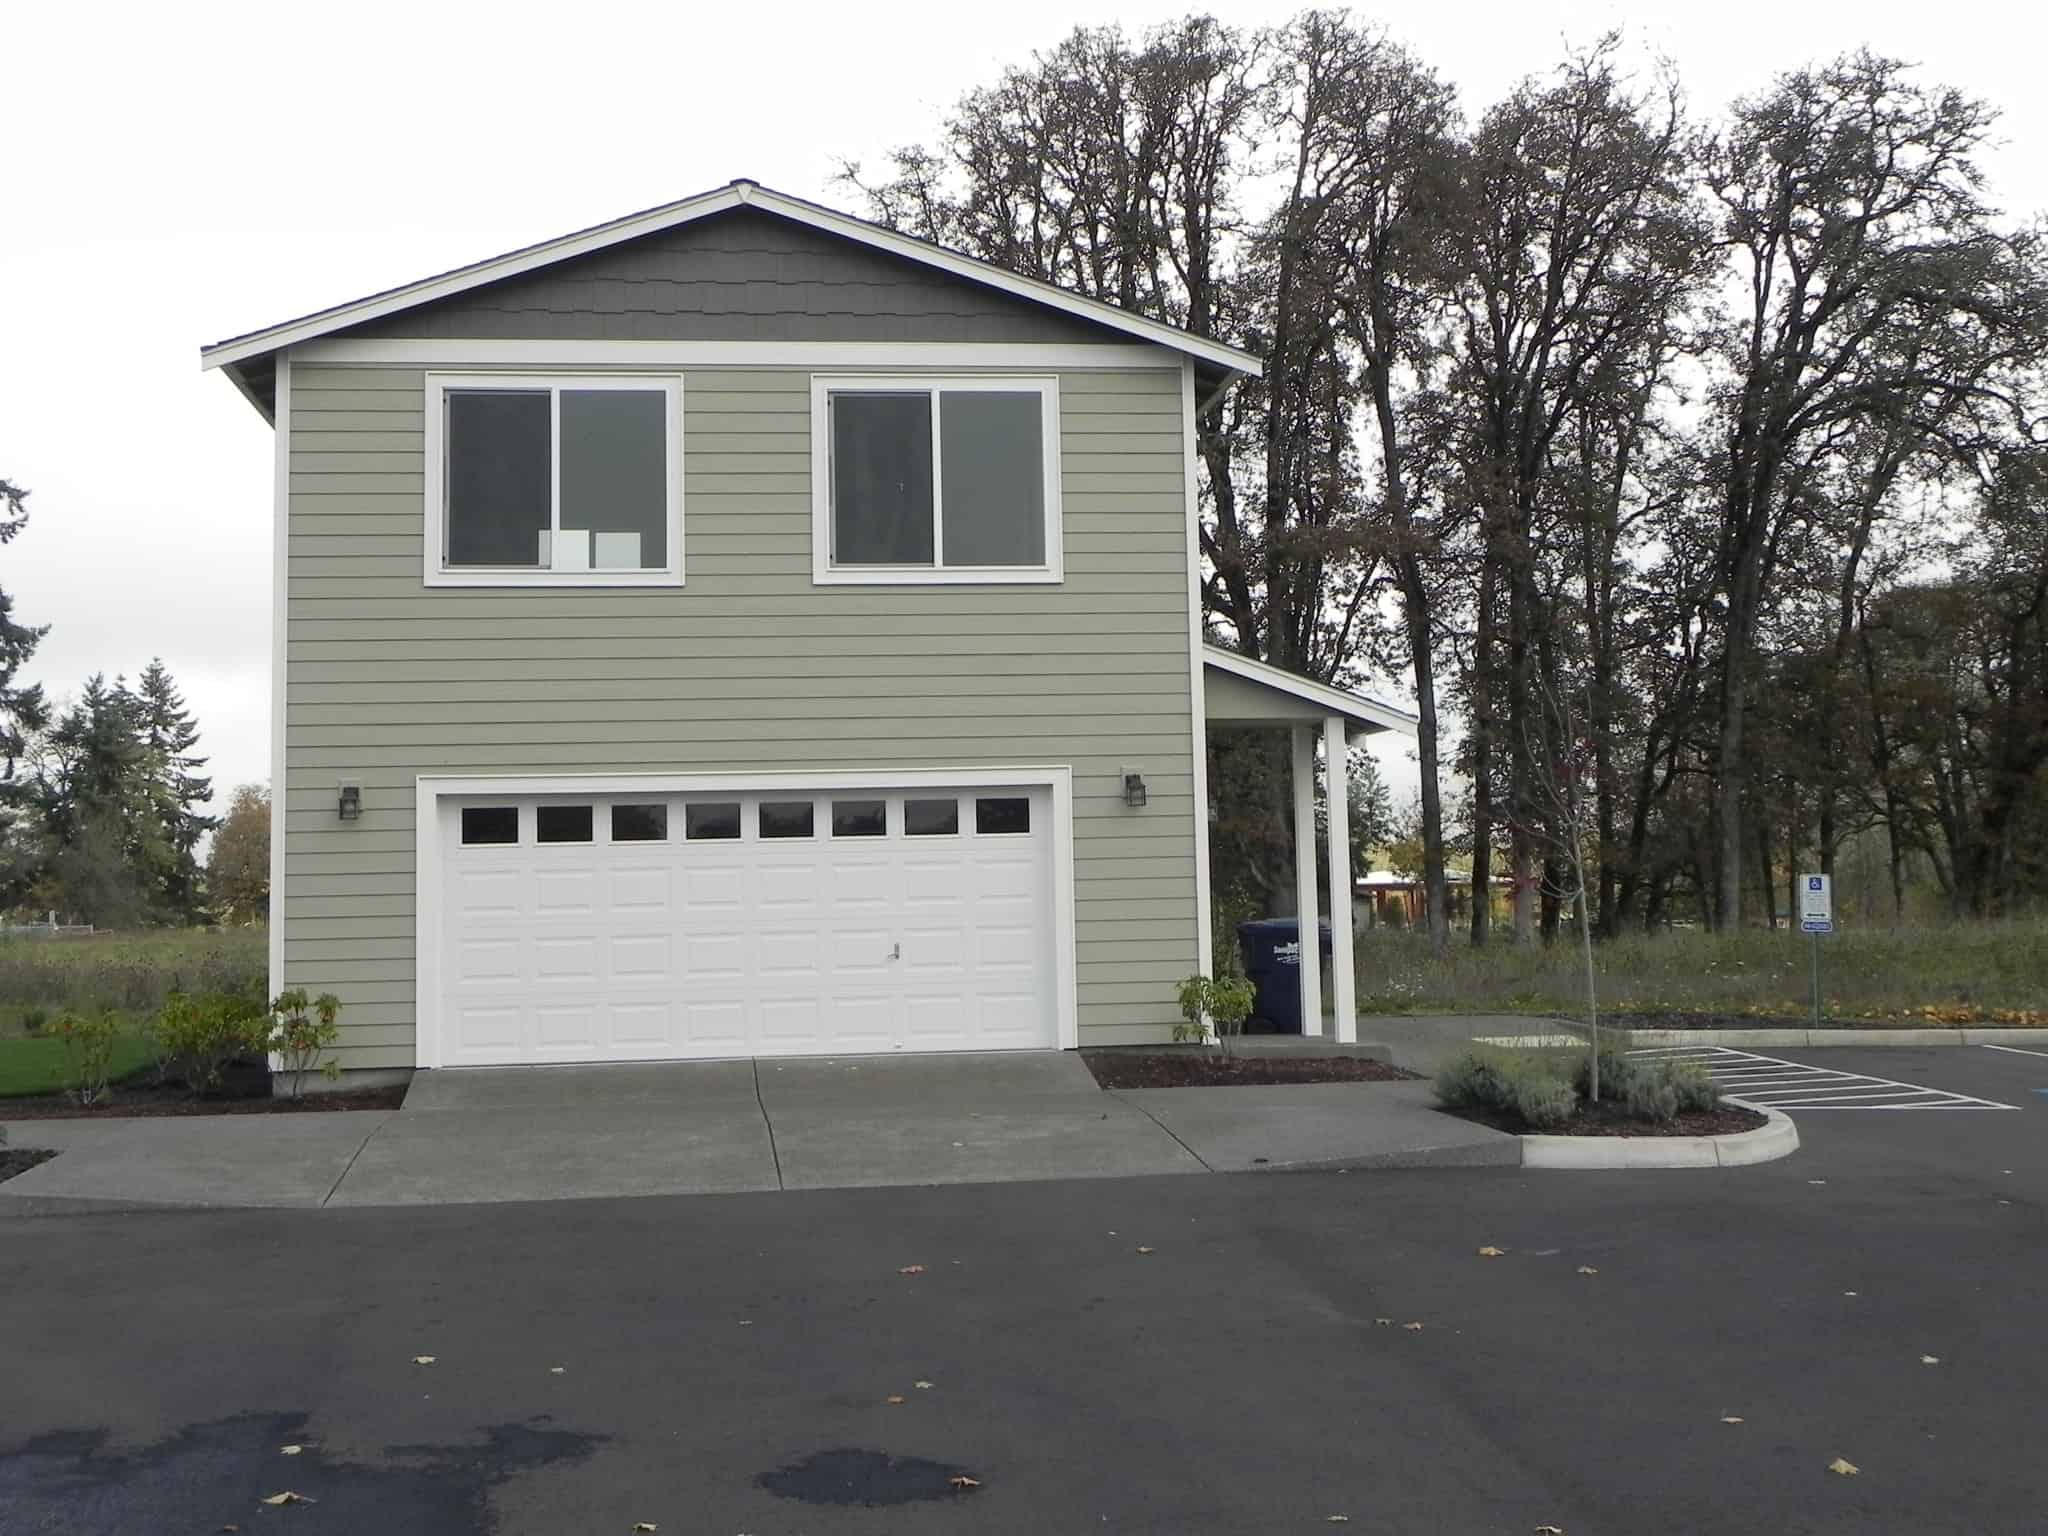 Garage Builders Tri Cities Wa Plan 2 24 Ft X 24 Ft Reality Homes Inc Custom Home Builders